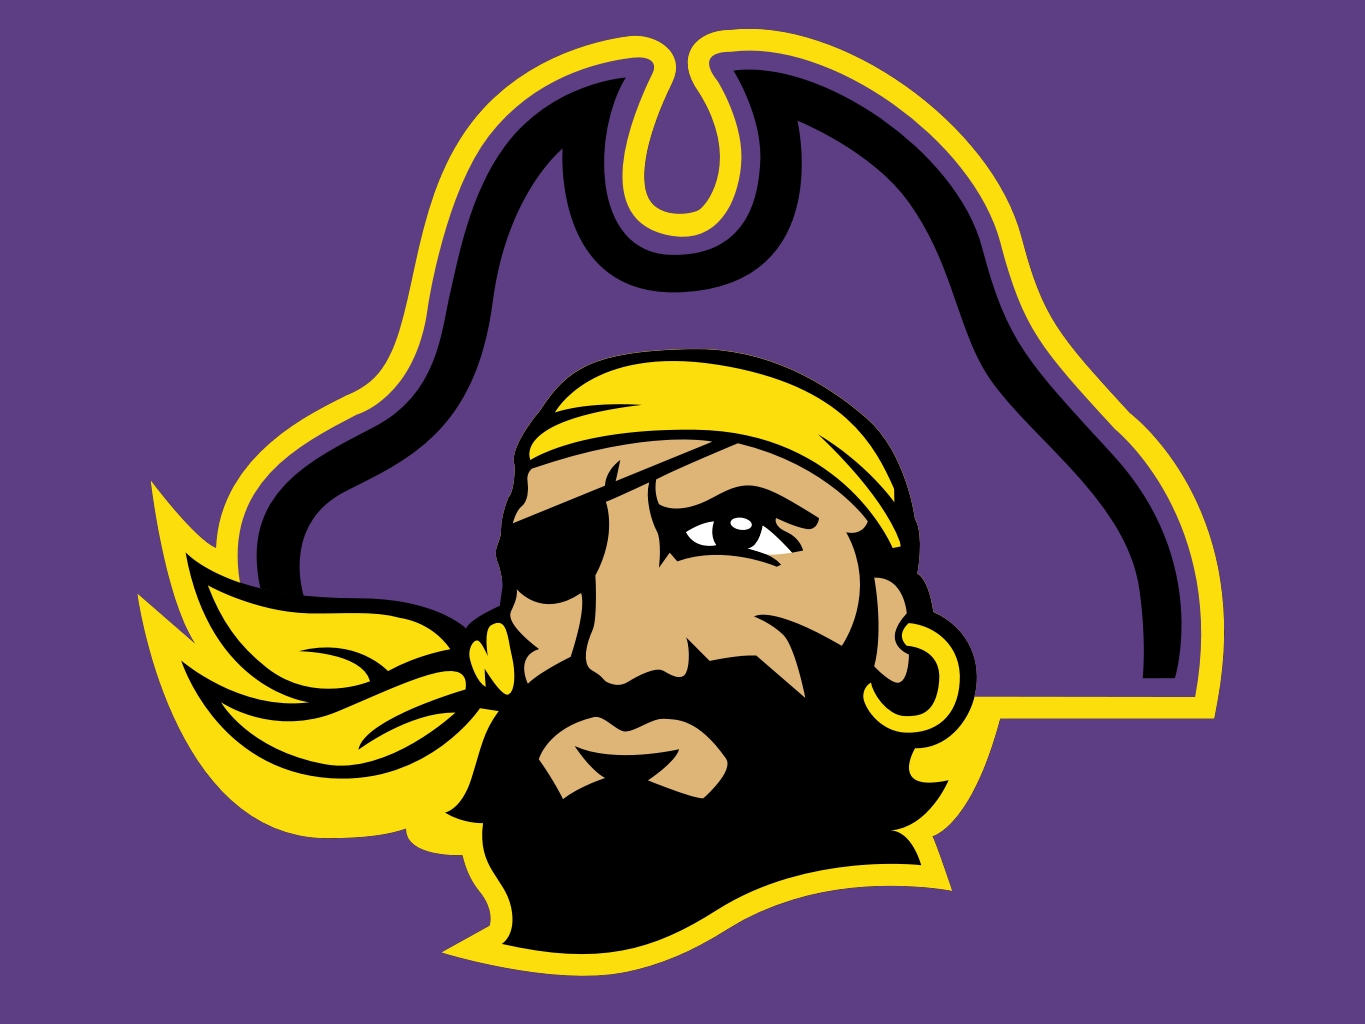 East carolina university clipart.